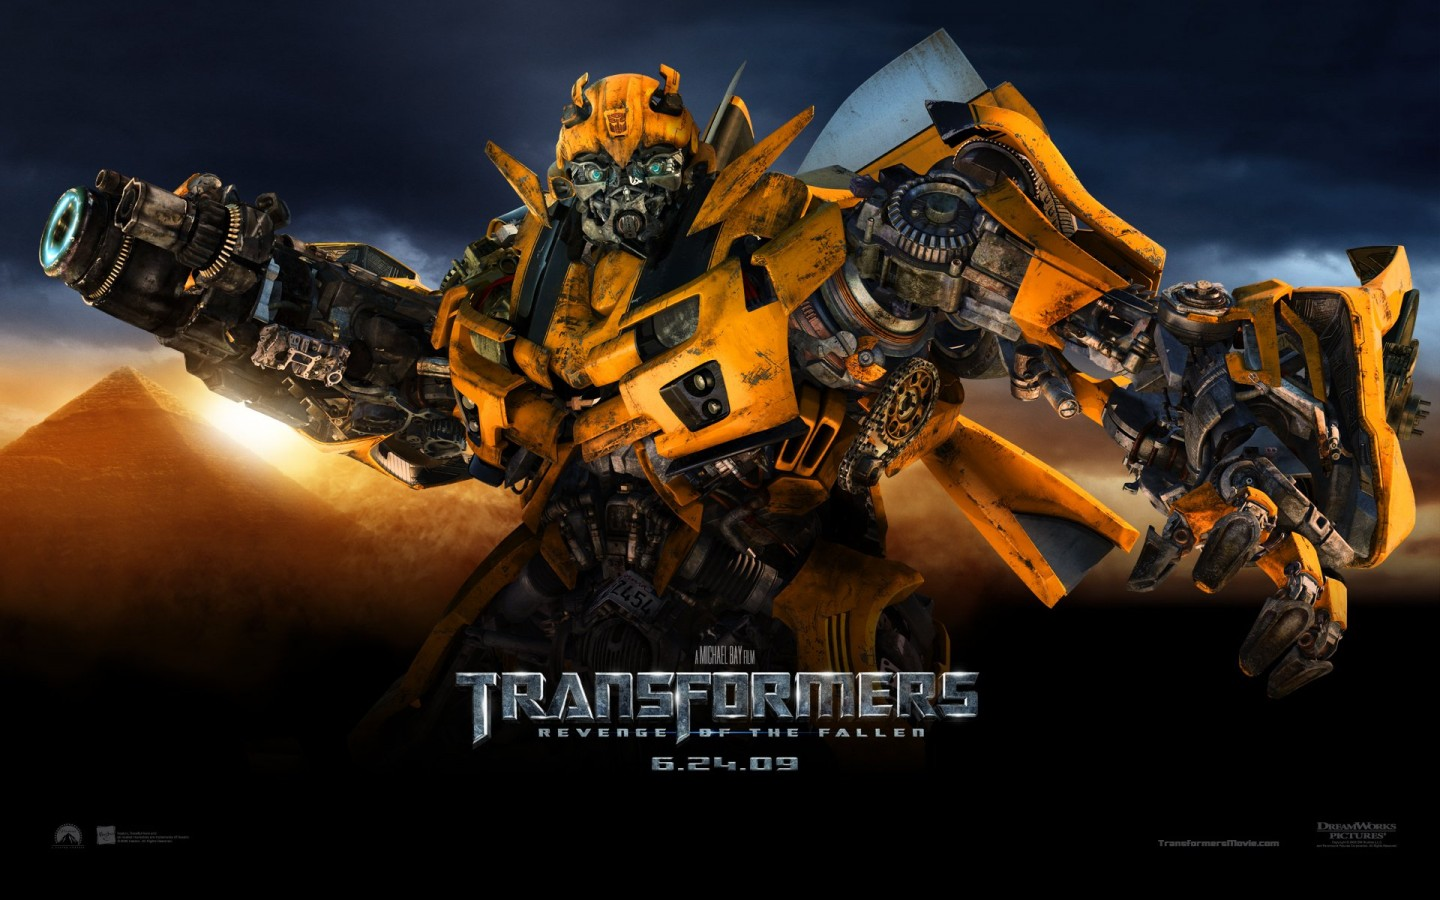 Transformers Classic Desktop Wallpaper 49455